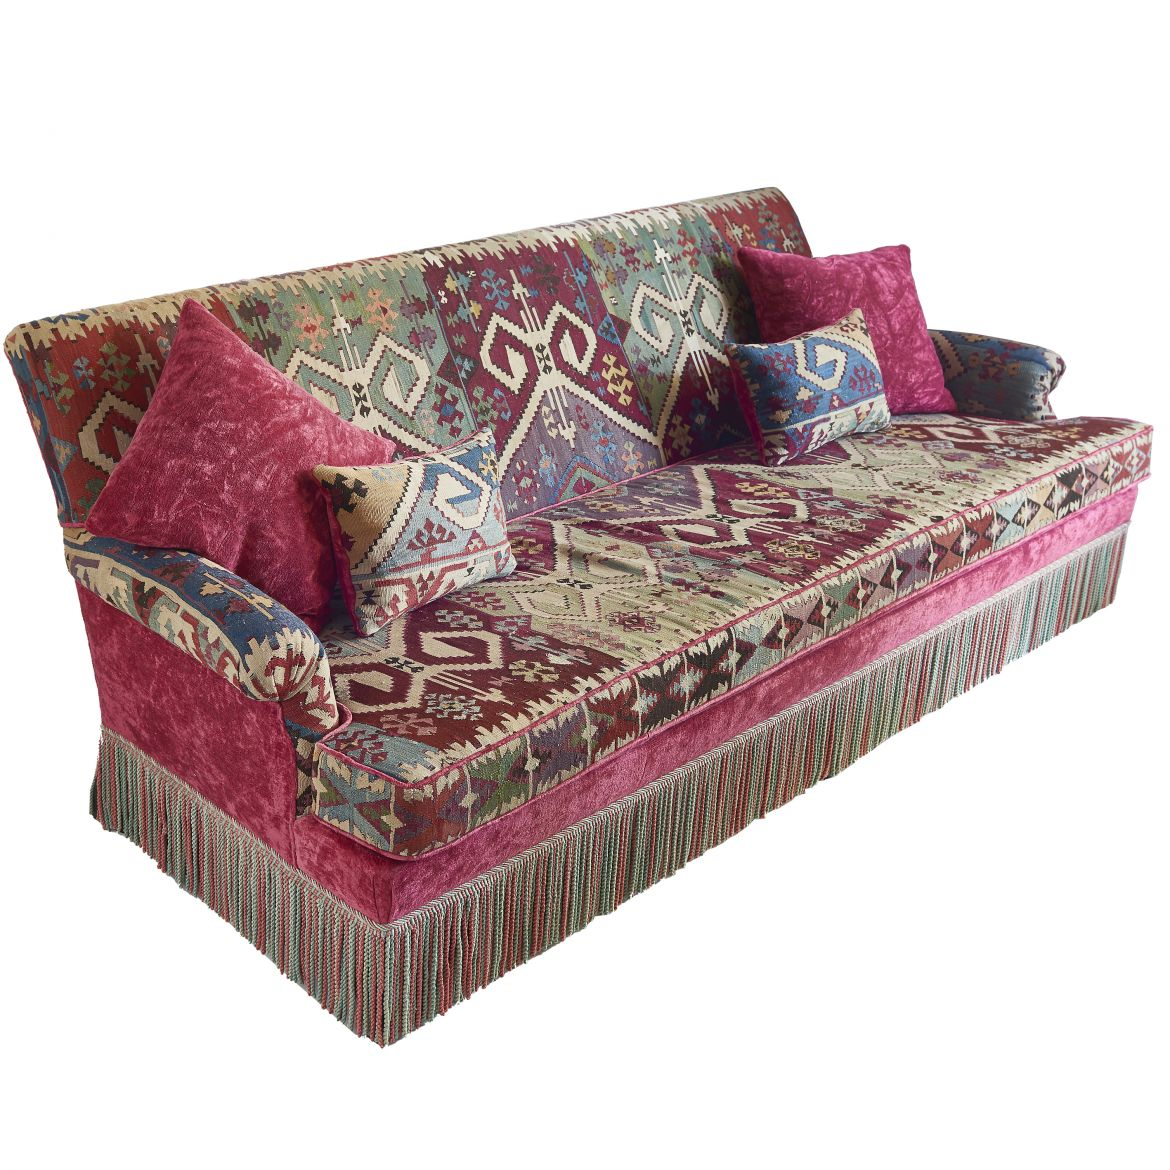 Sofa with Antique Kilim Upholstery